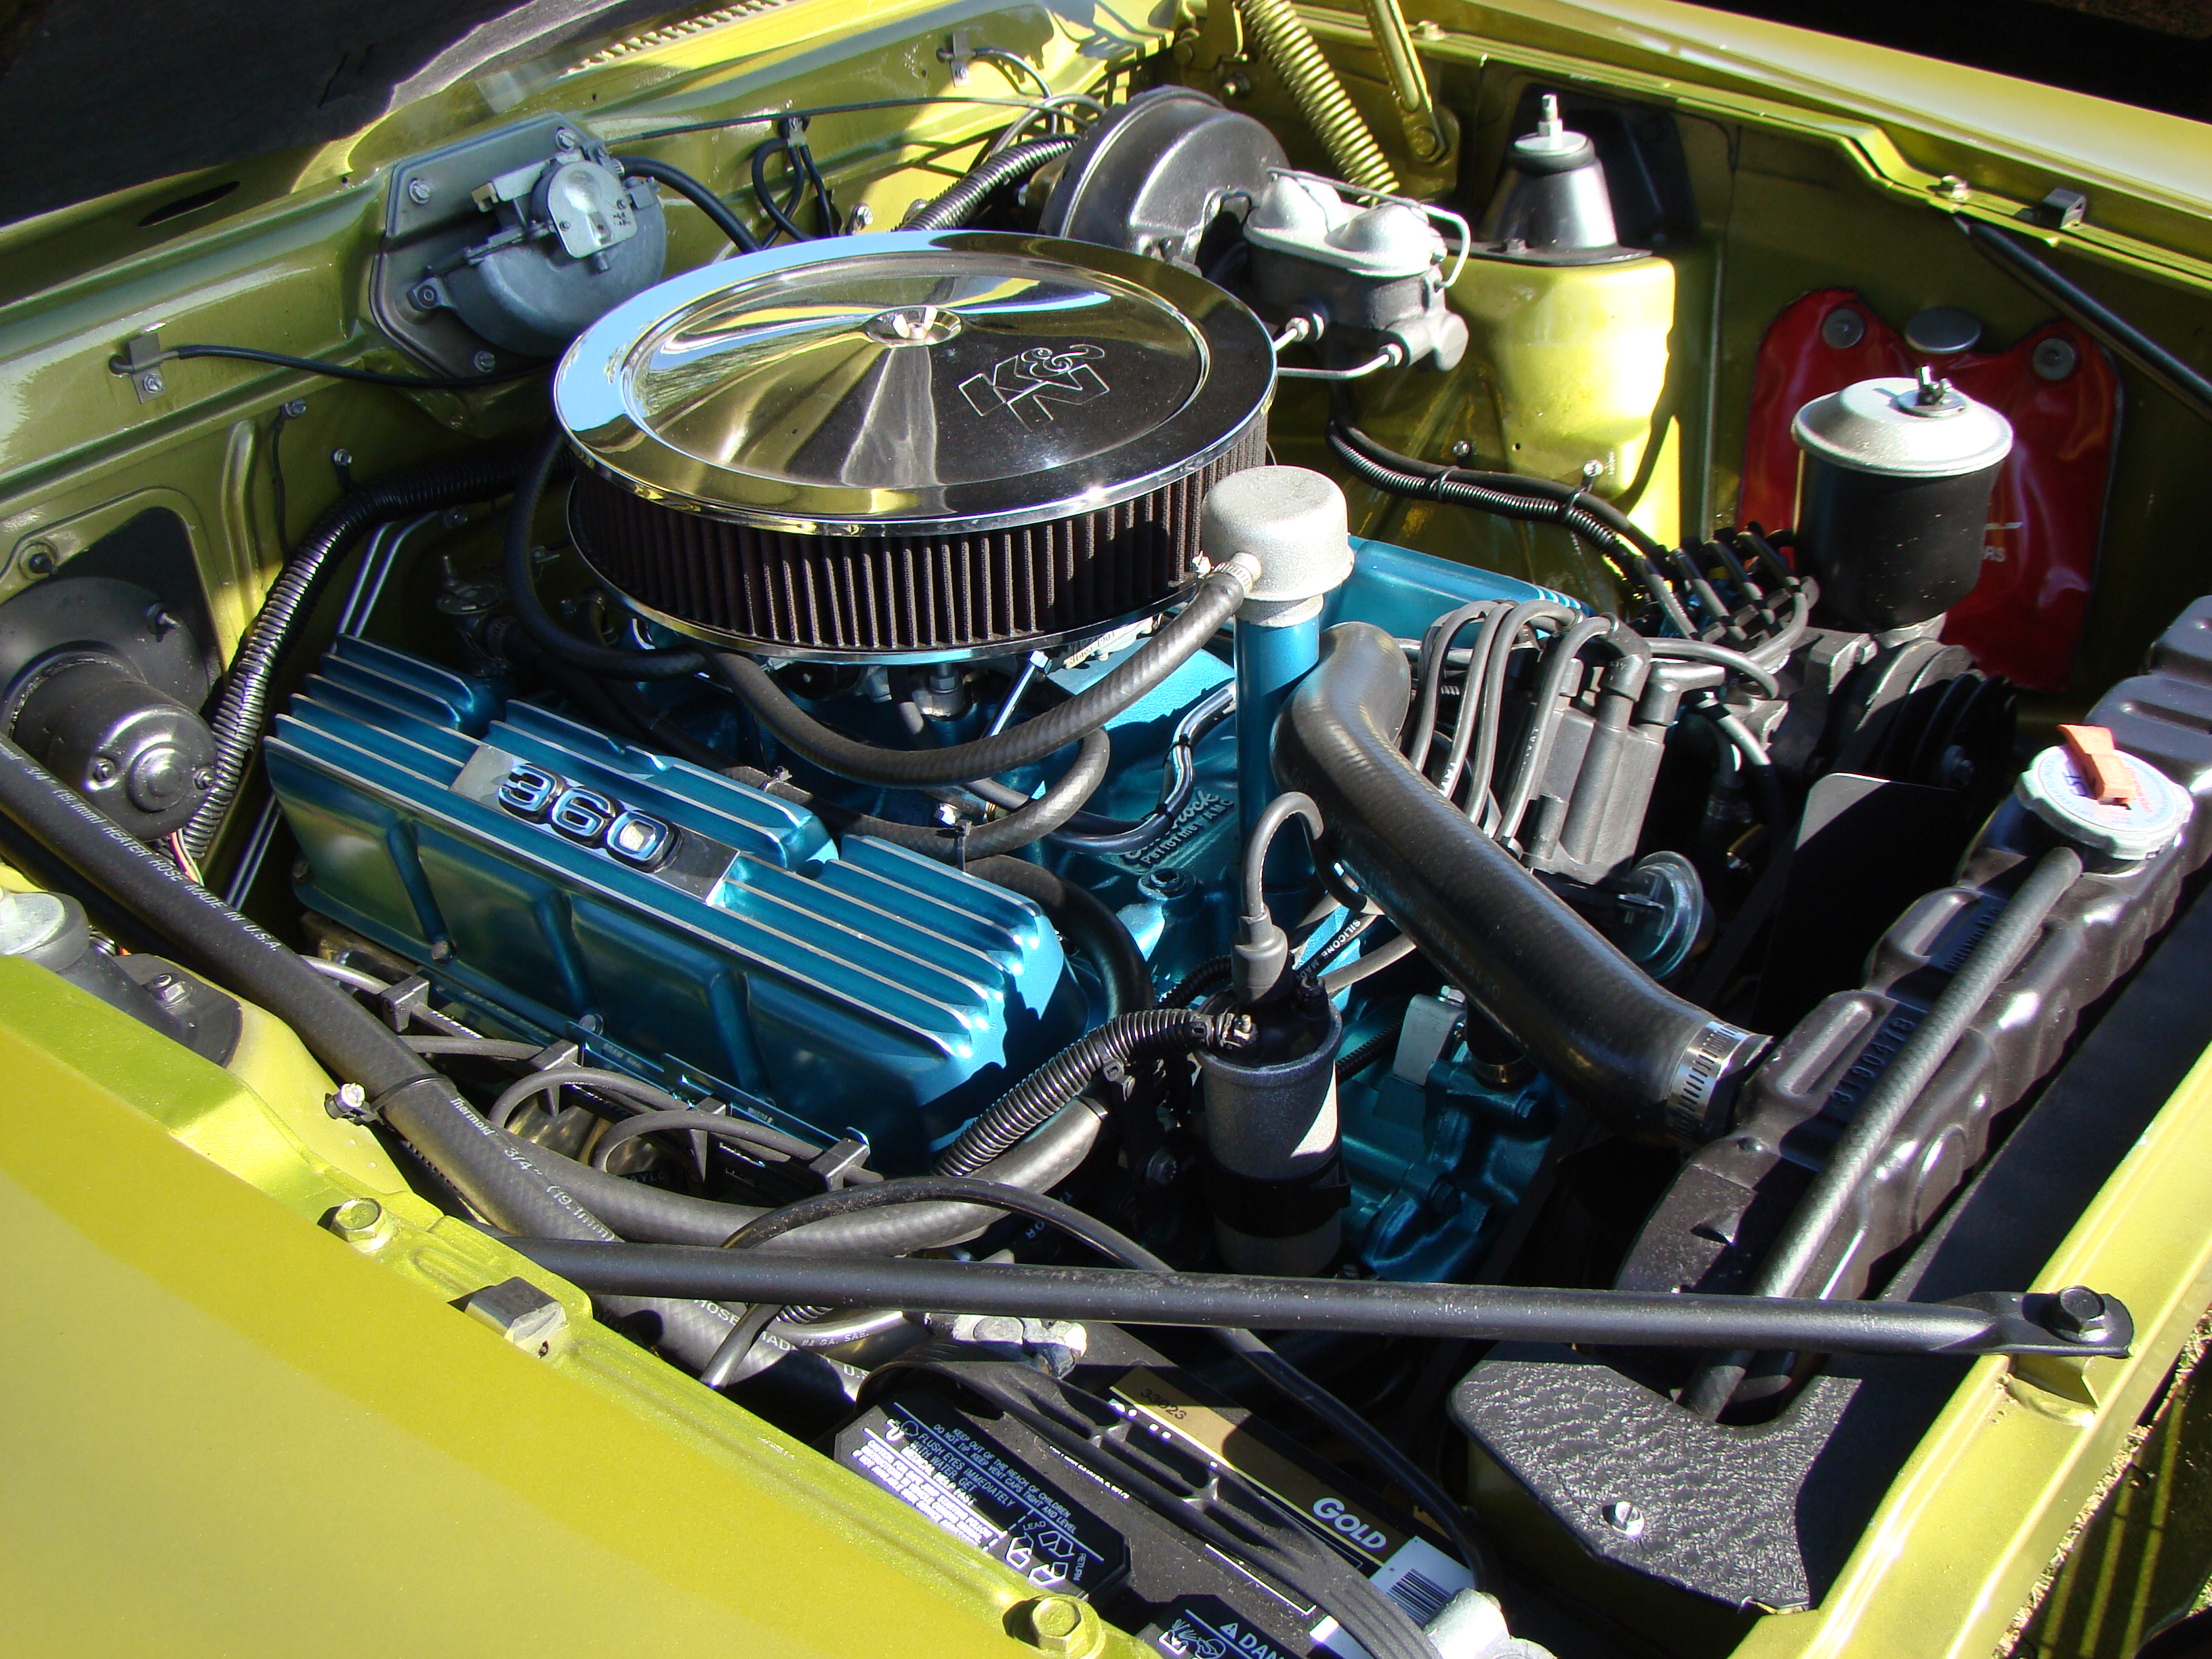 AMC_V8_engine_360_CID_customized_um.JPG